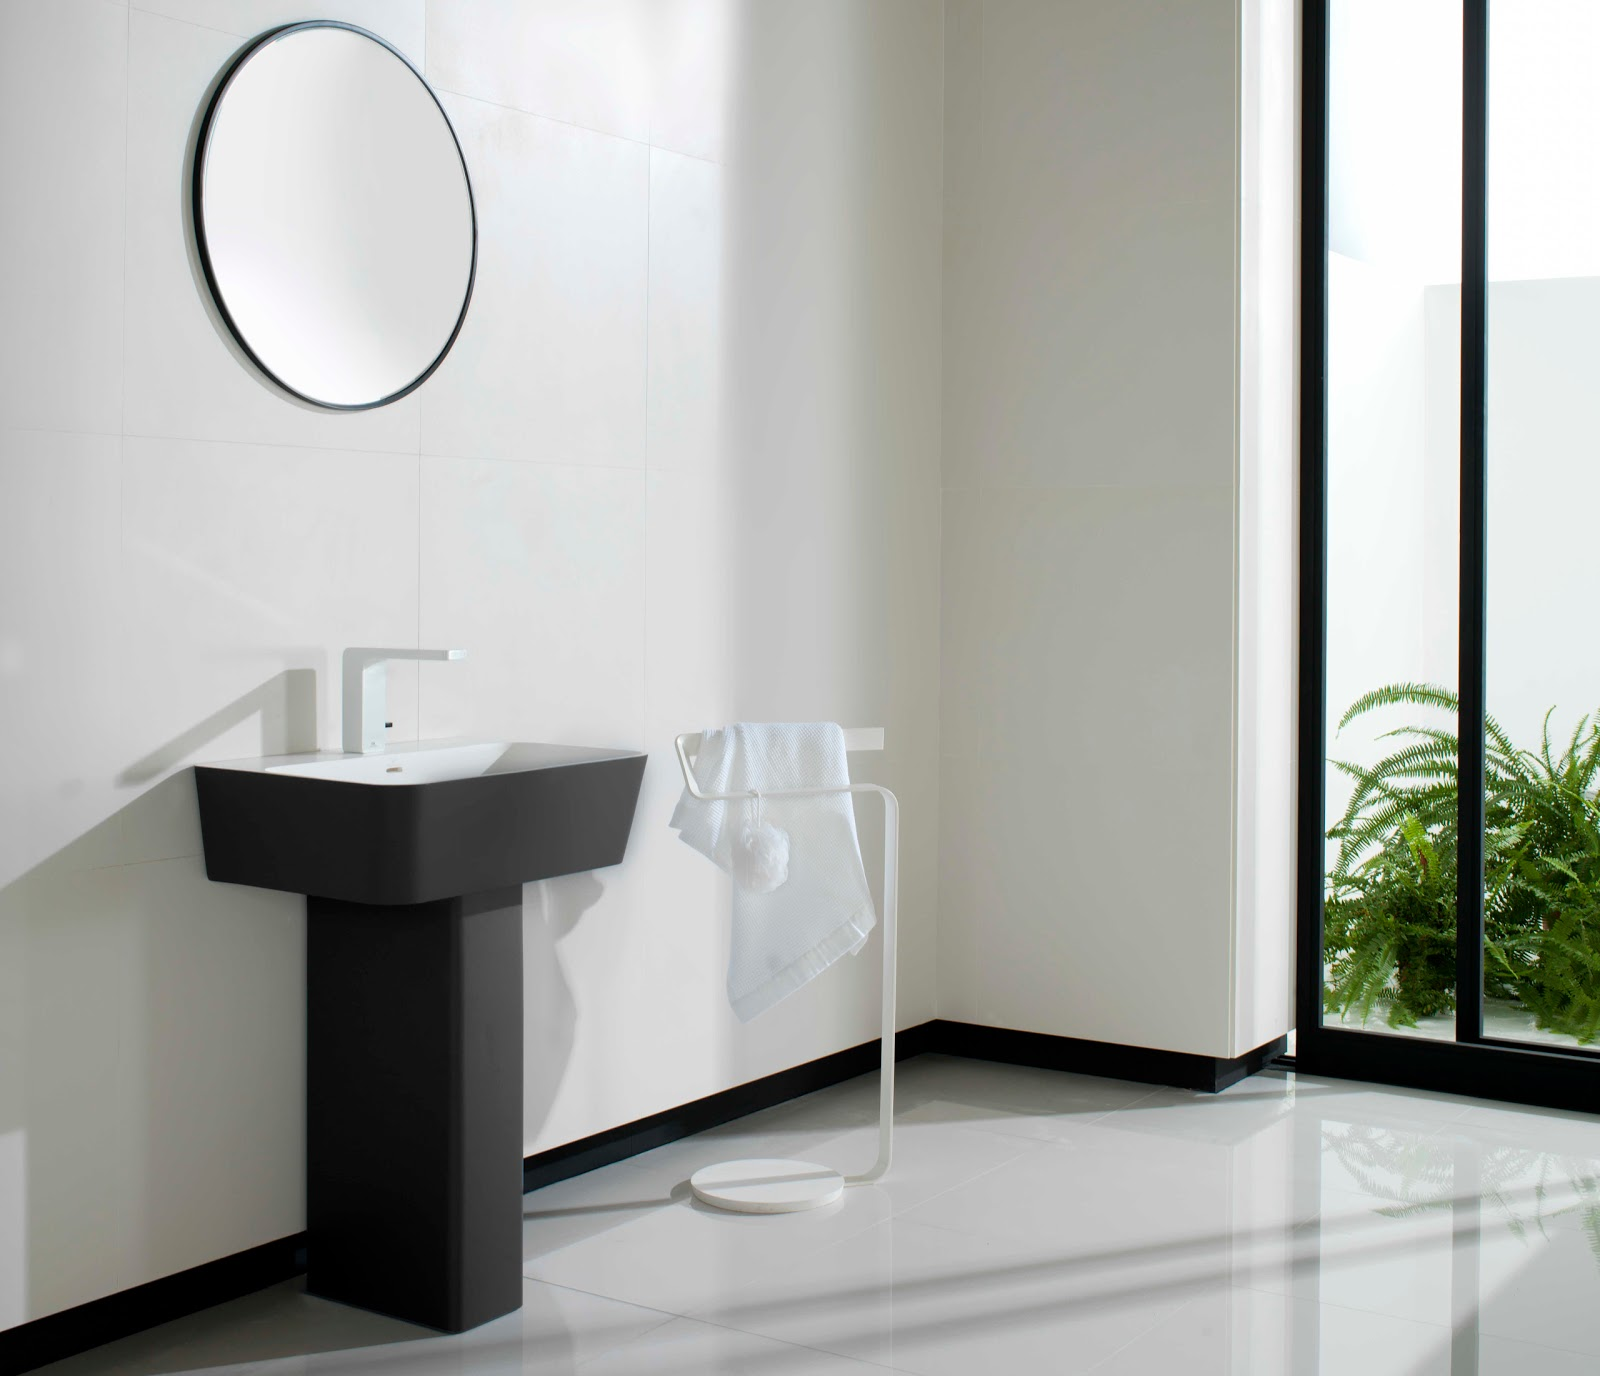 Porcelanosa Bathroom Accessories  Okpickcom - Porcelanosa bathroom accessories